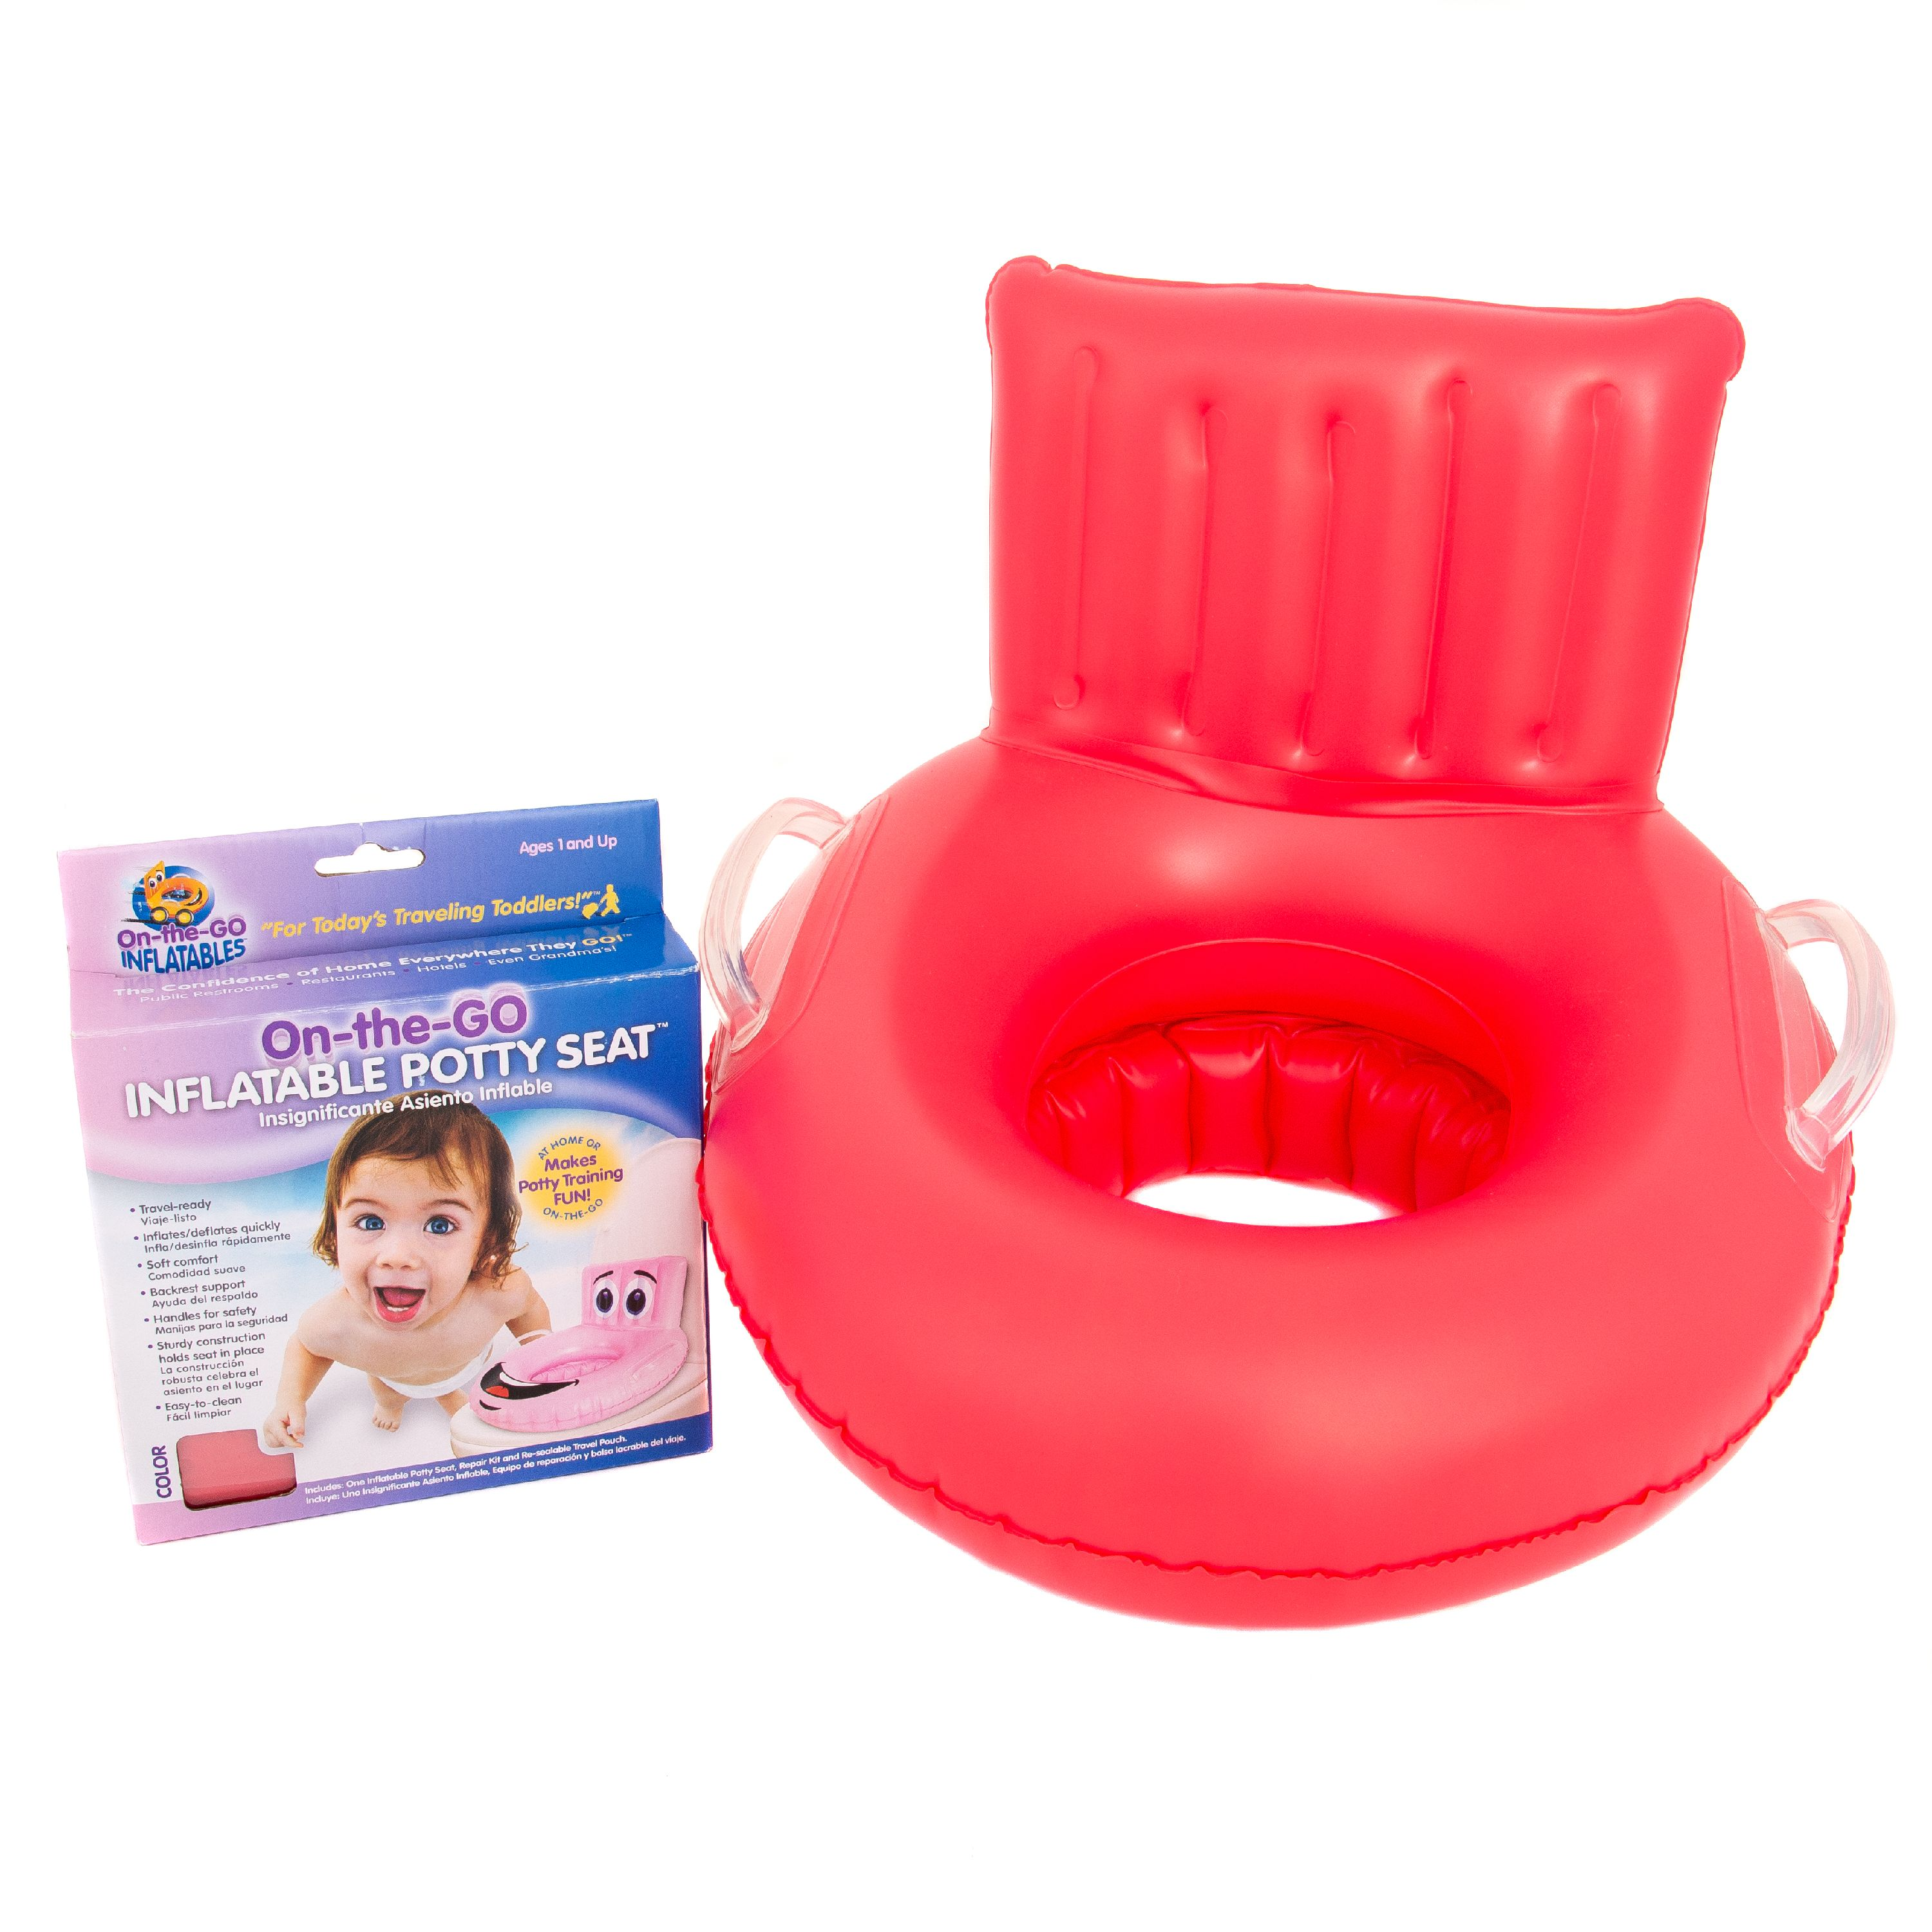 On the Go Inflatables Red Soft Inflatable Travel Potty Training Seat